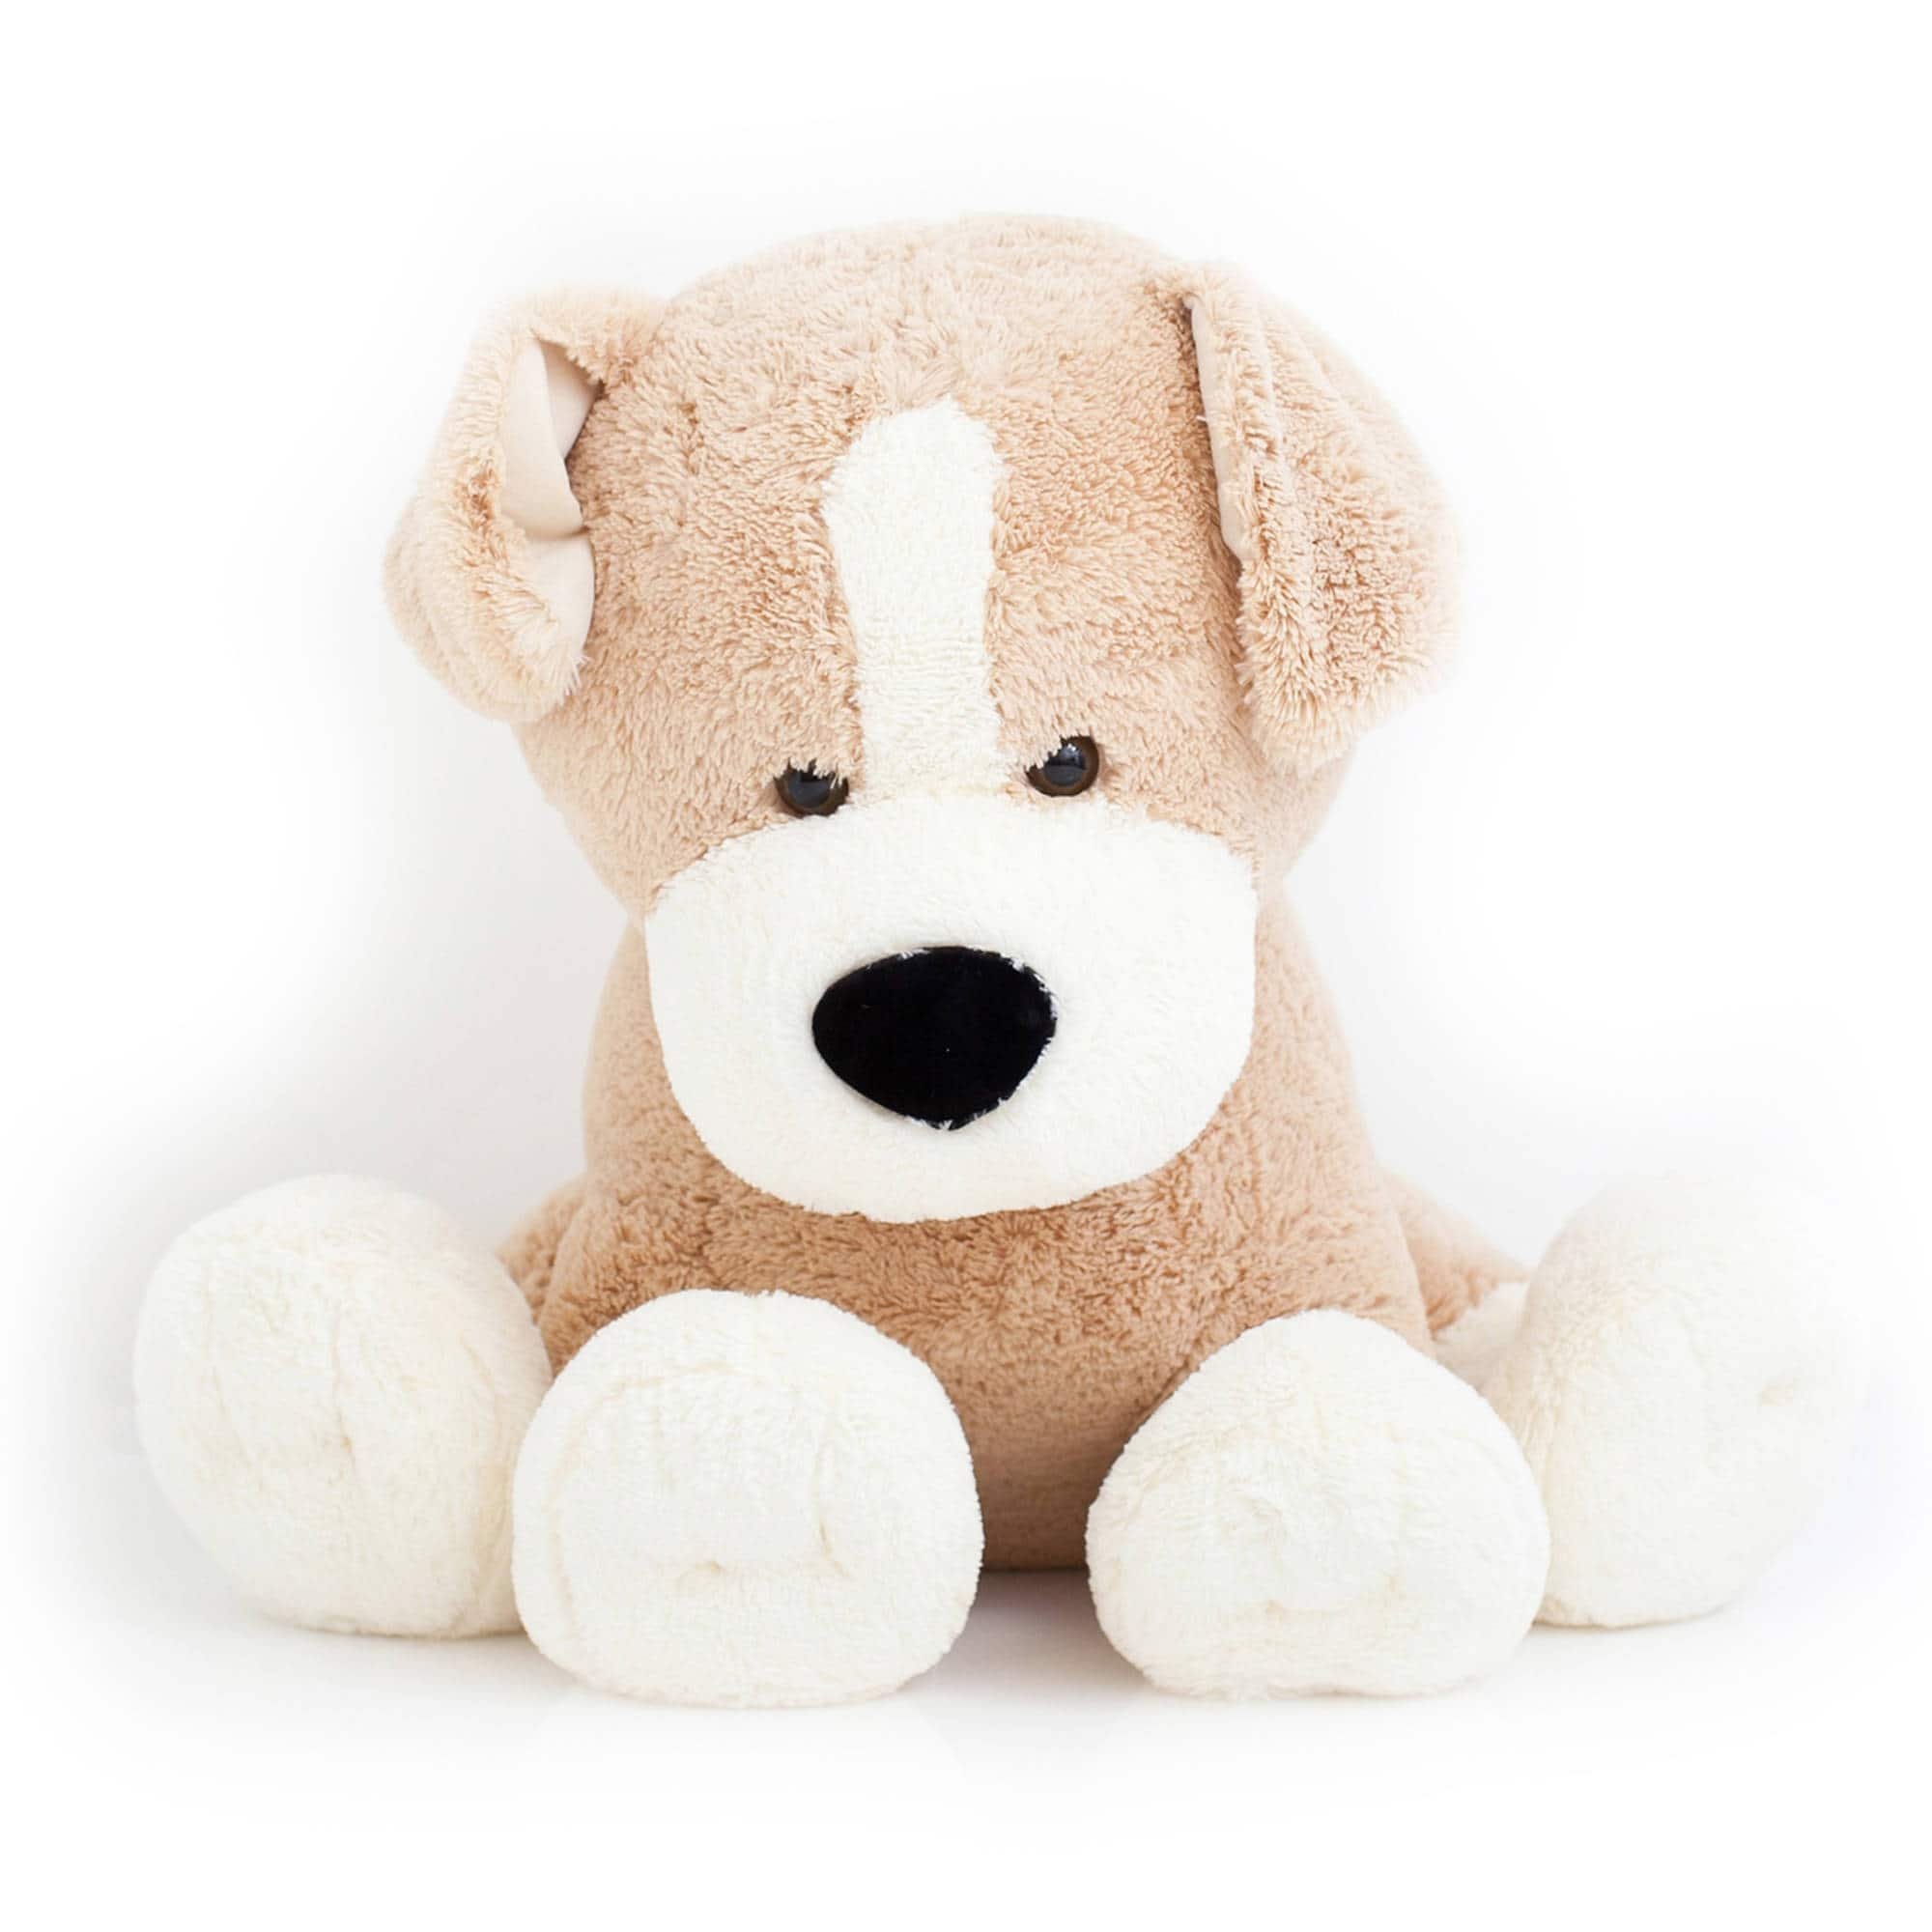 Best Made Toys Jumbo Sitting Dog $18.95